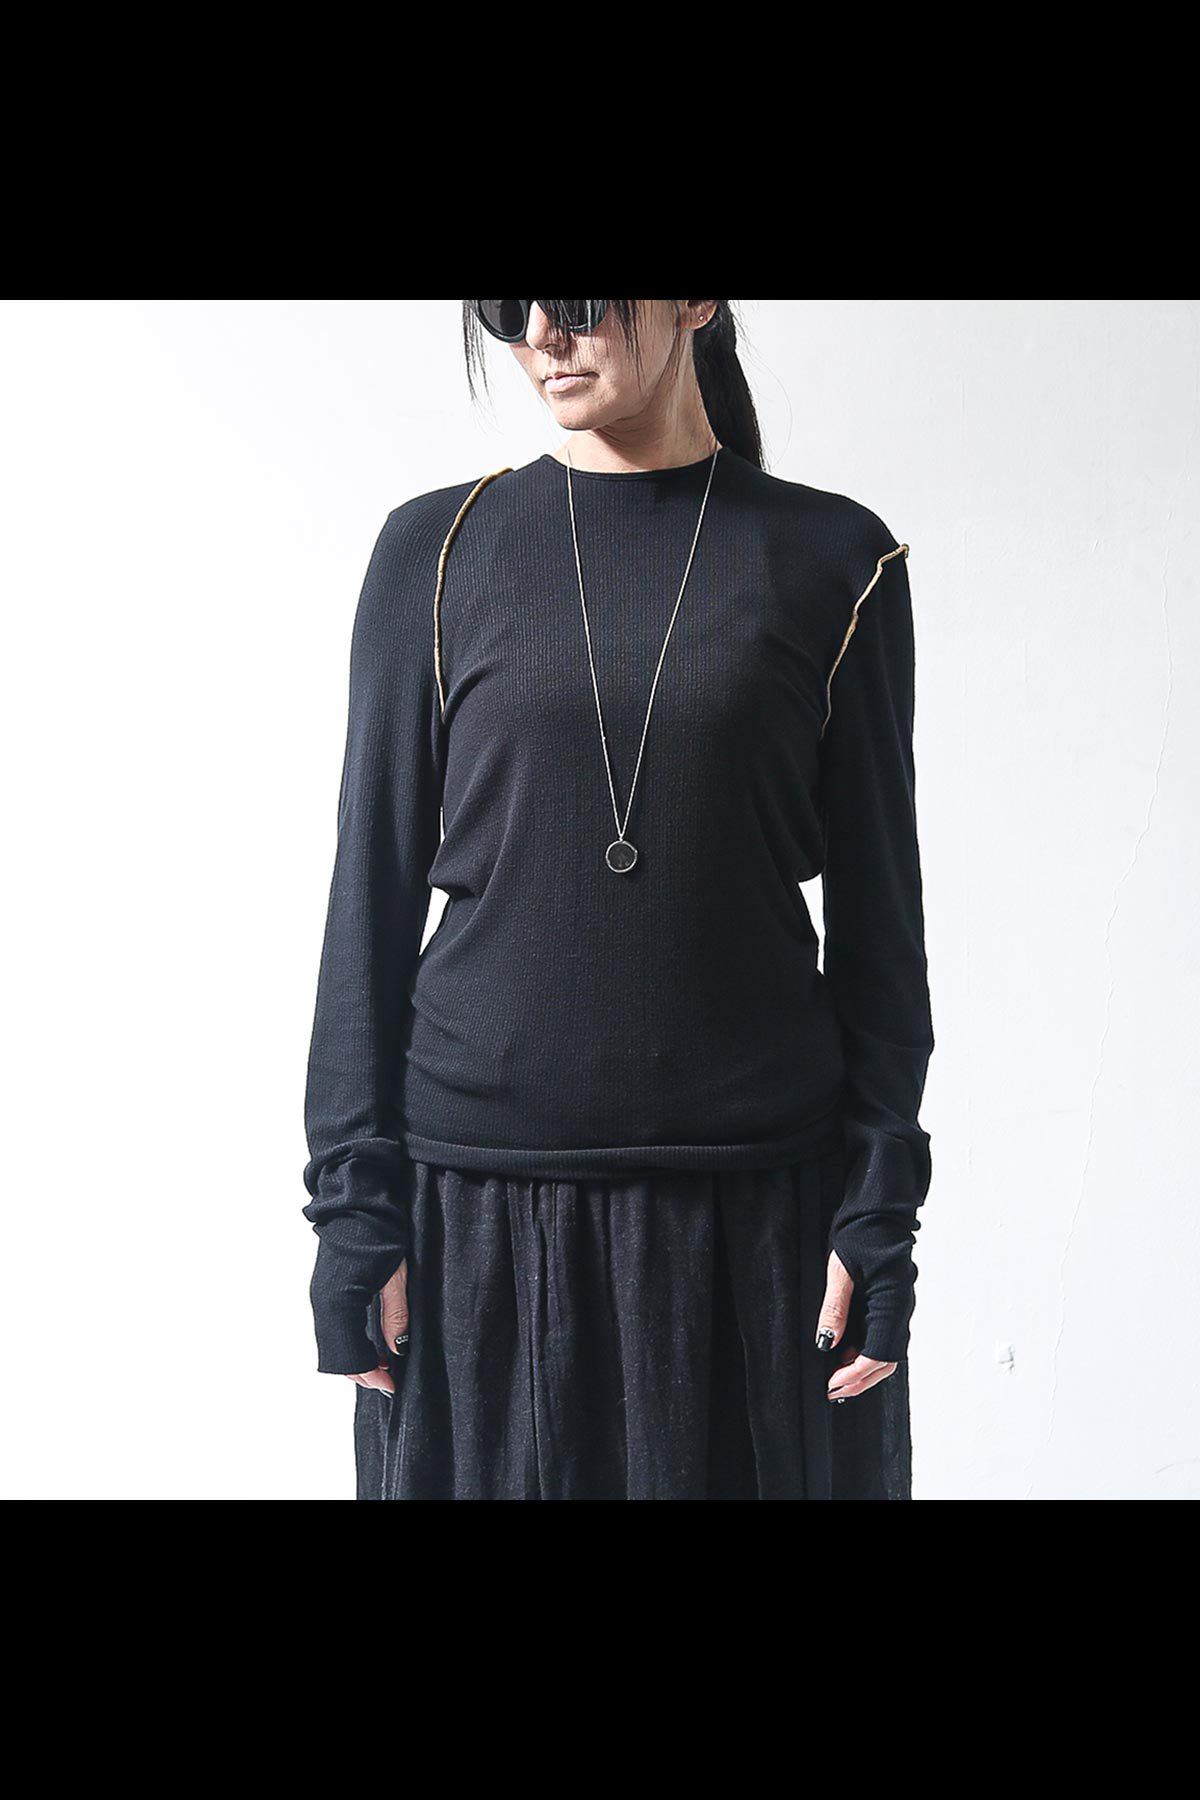 <img class='new_mark_img1' src='https://img.shop-pro.jp/img/new/icons56.gif' style='border:none;display:inline;margin:0px;padding:0px;width:auto;' />CREW NECK KNIT TOPS TS08_BLACK